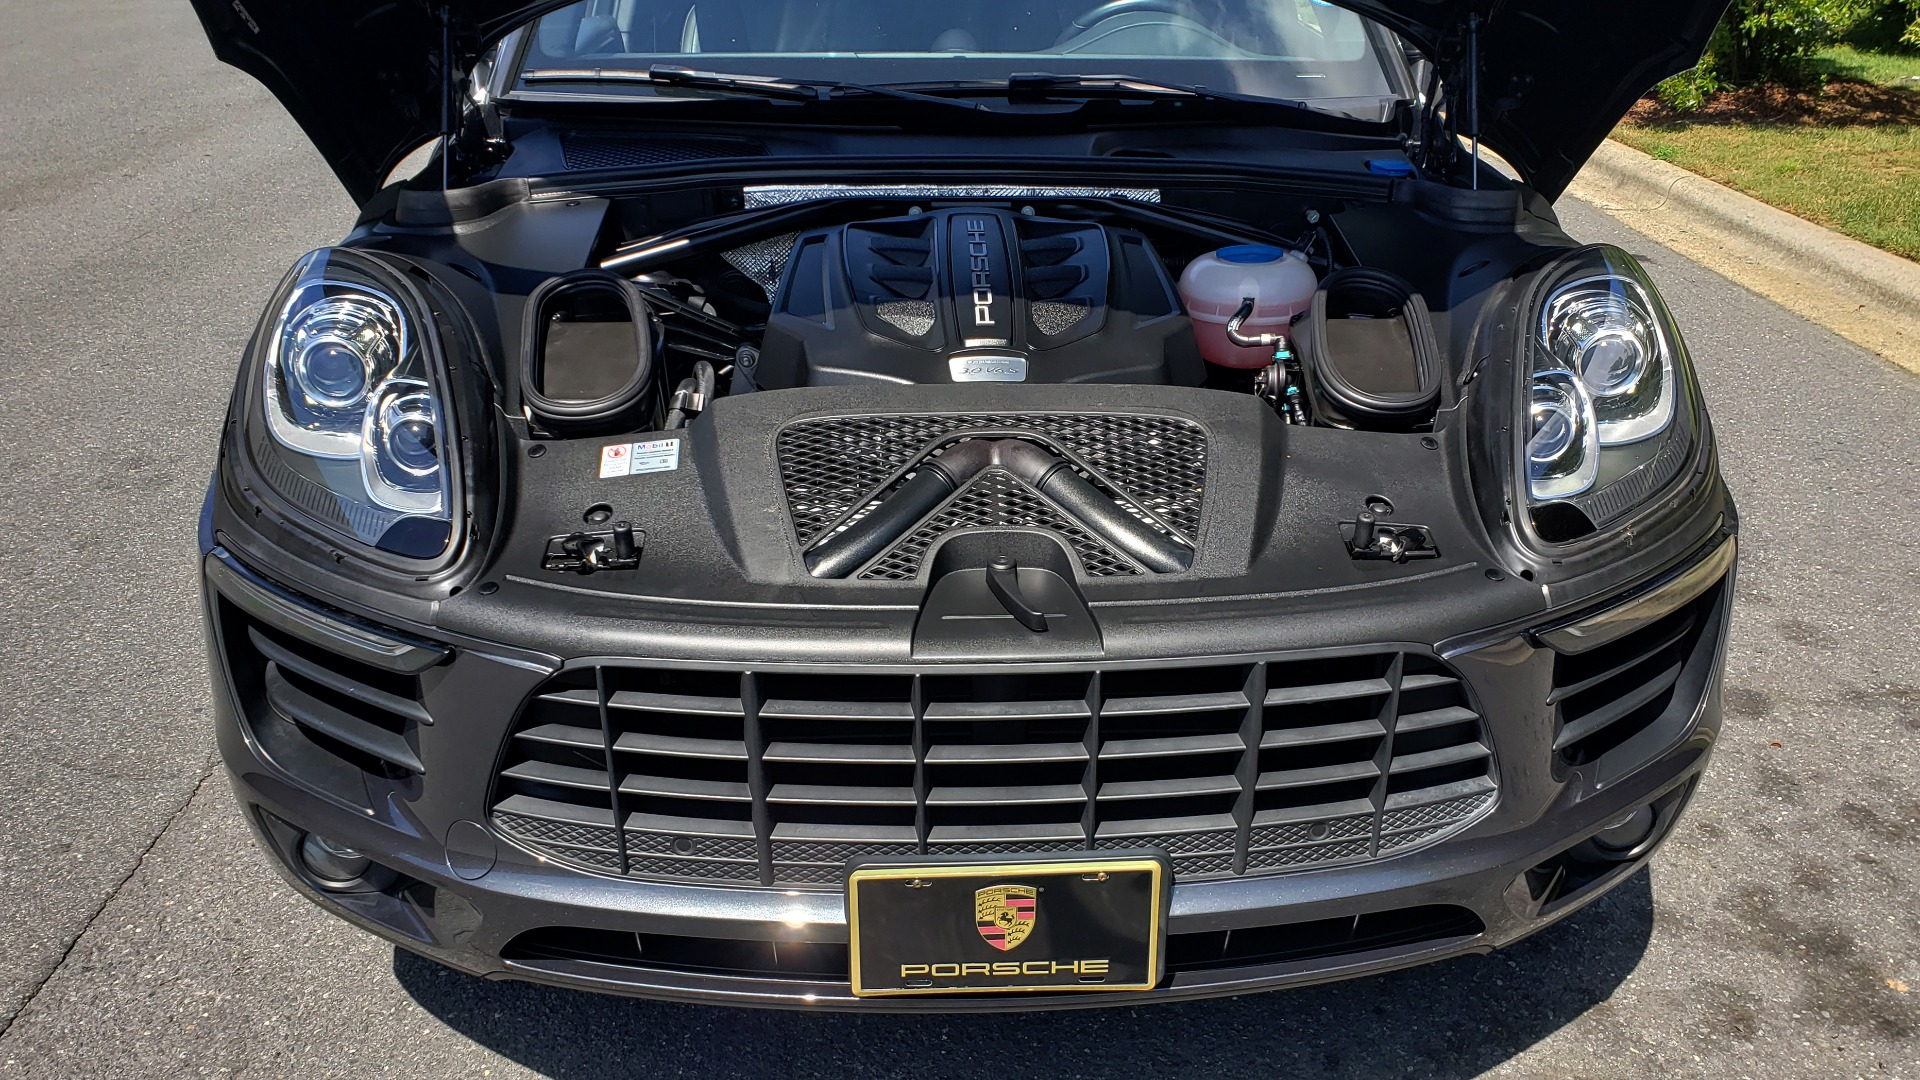 Used 2017 Porsche MACAN S PREMIUM PKG / NAV / BOSE / SUNROOF / REARVIEW for sale Sold at Formula Imports in Charlotte NC 28227 14